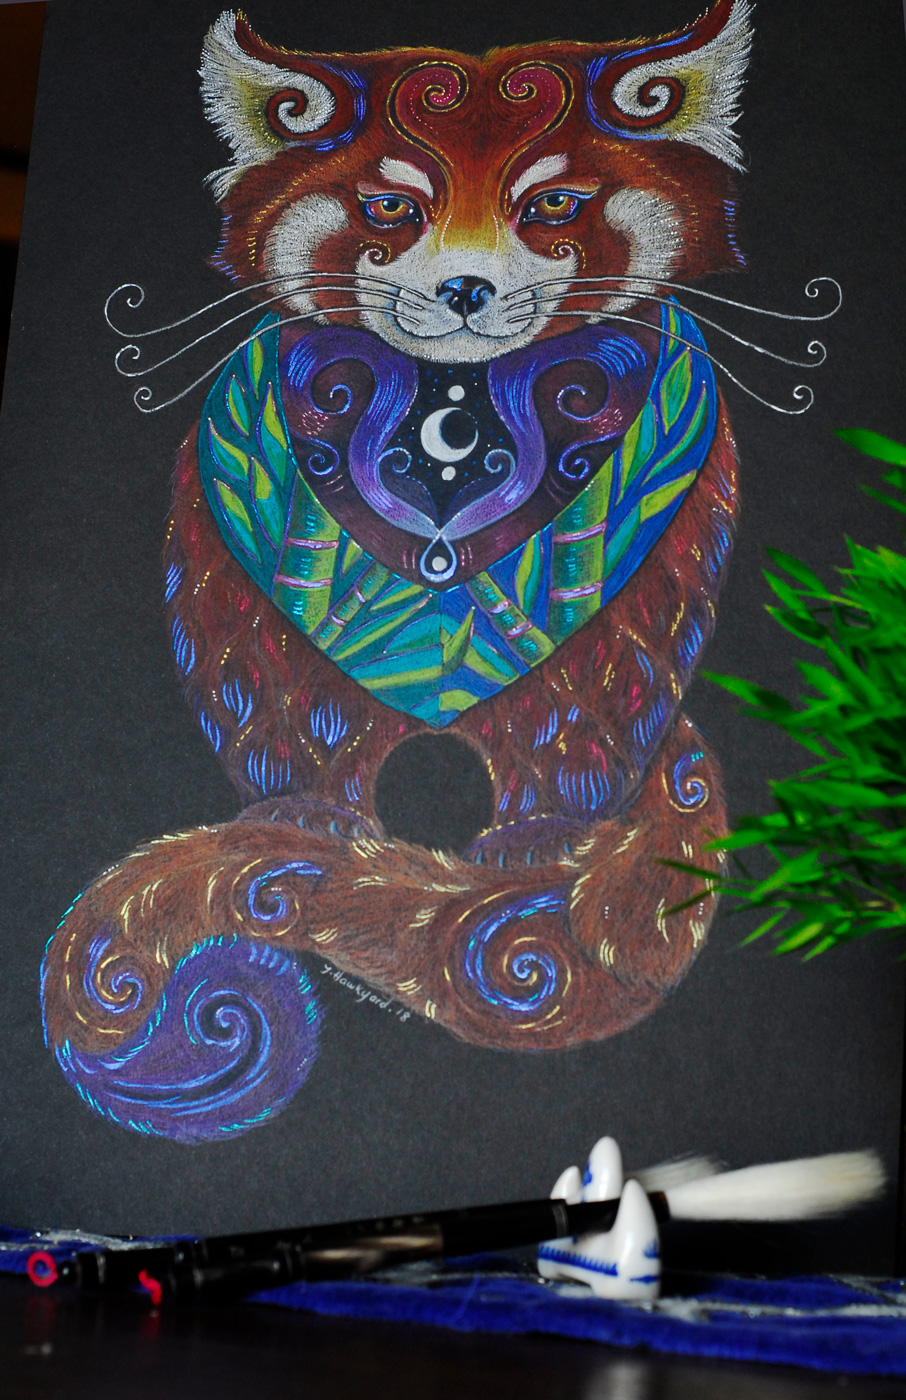 Red Panda Totem by Jennifer Hawkyard